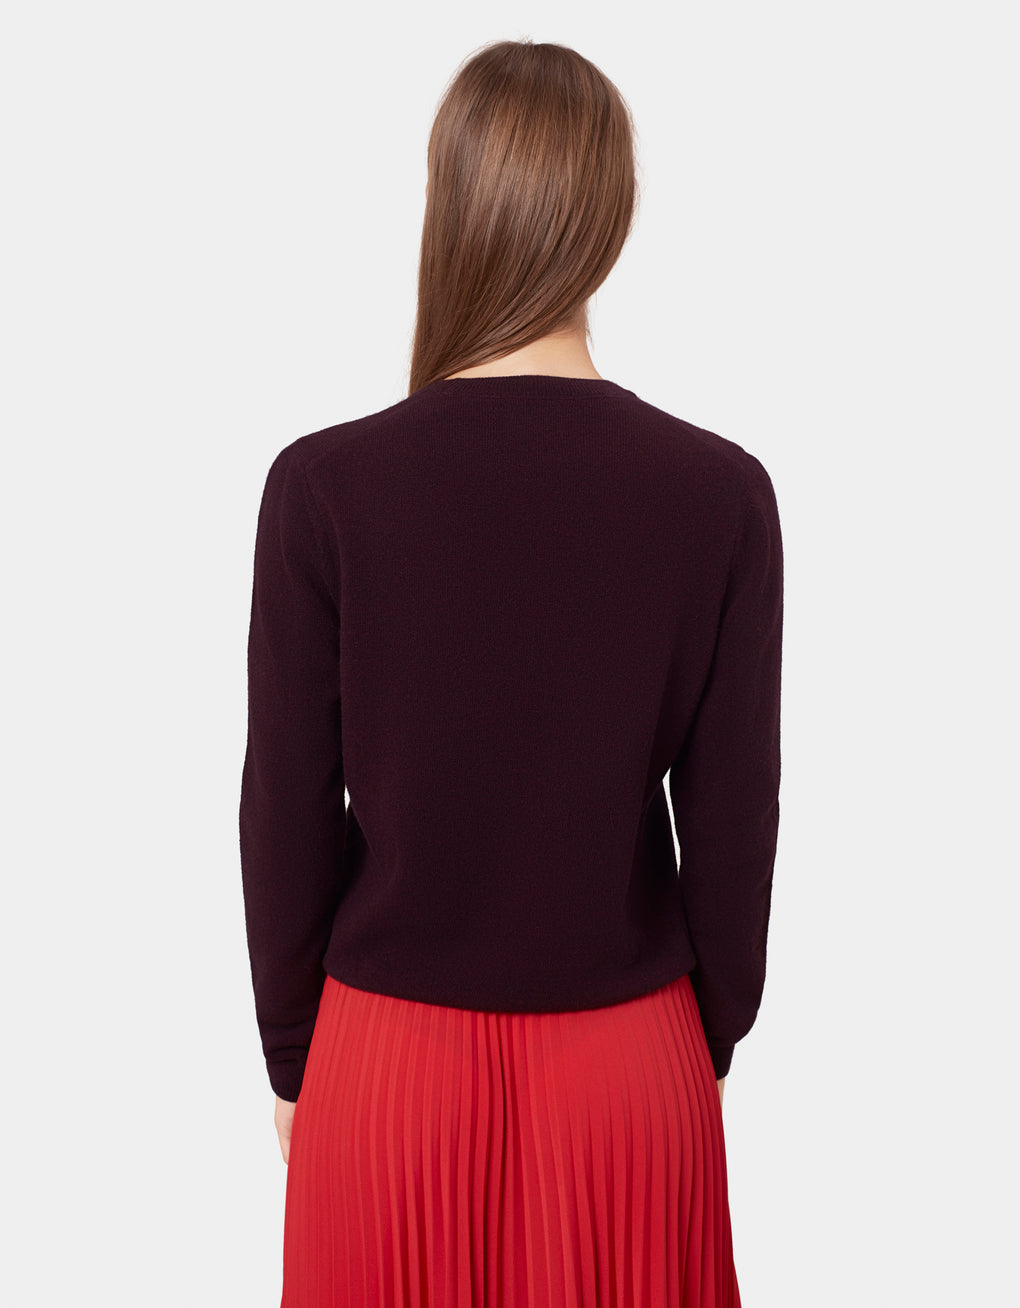 Colorful Standard Women Merino Wool Crew Women Merino Crewneck Oxblood Red